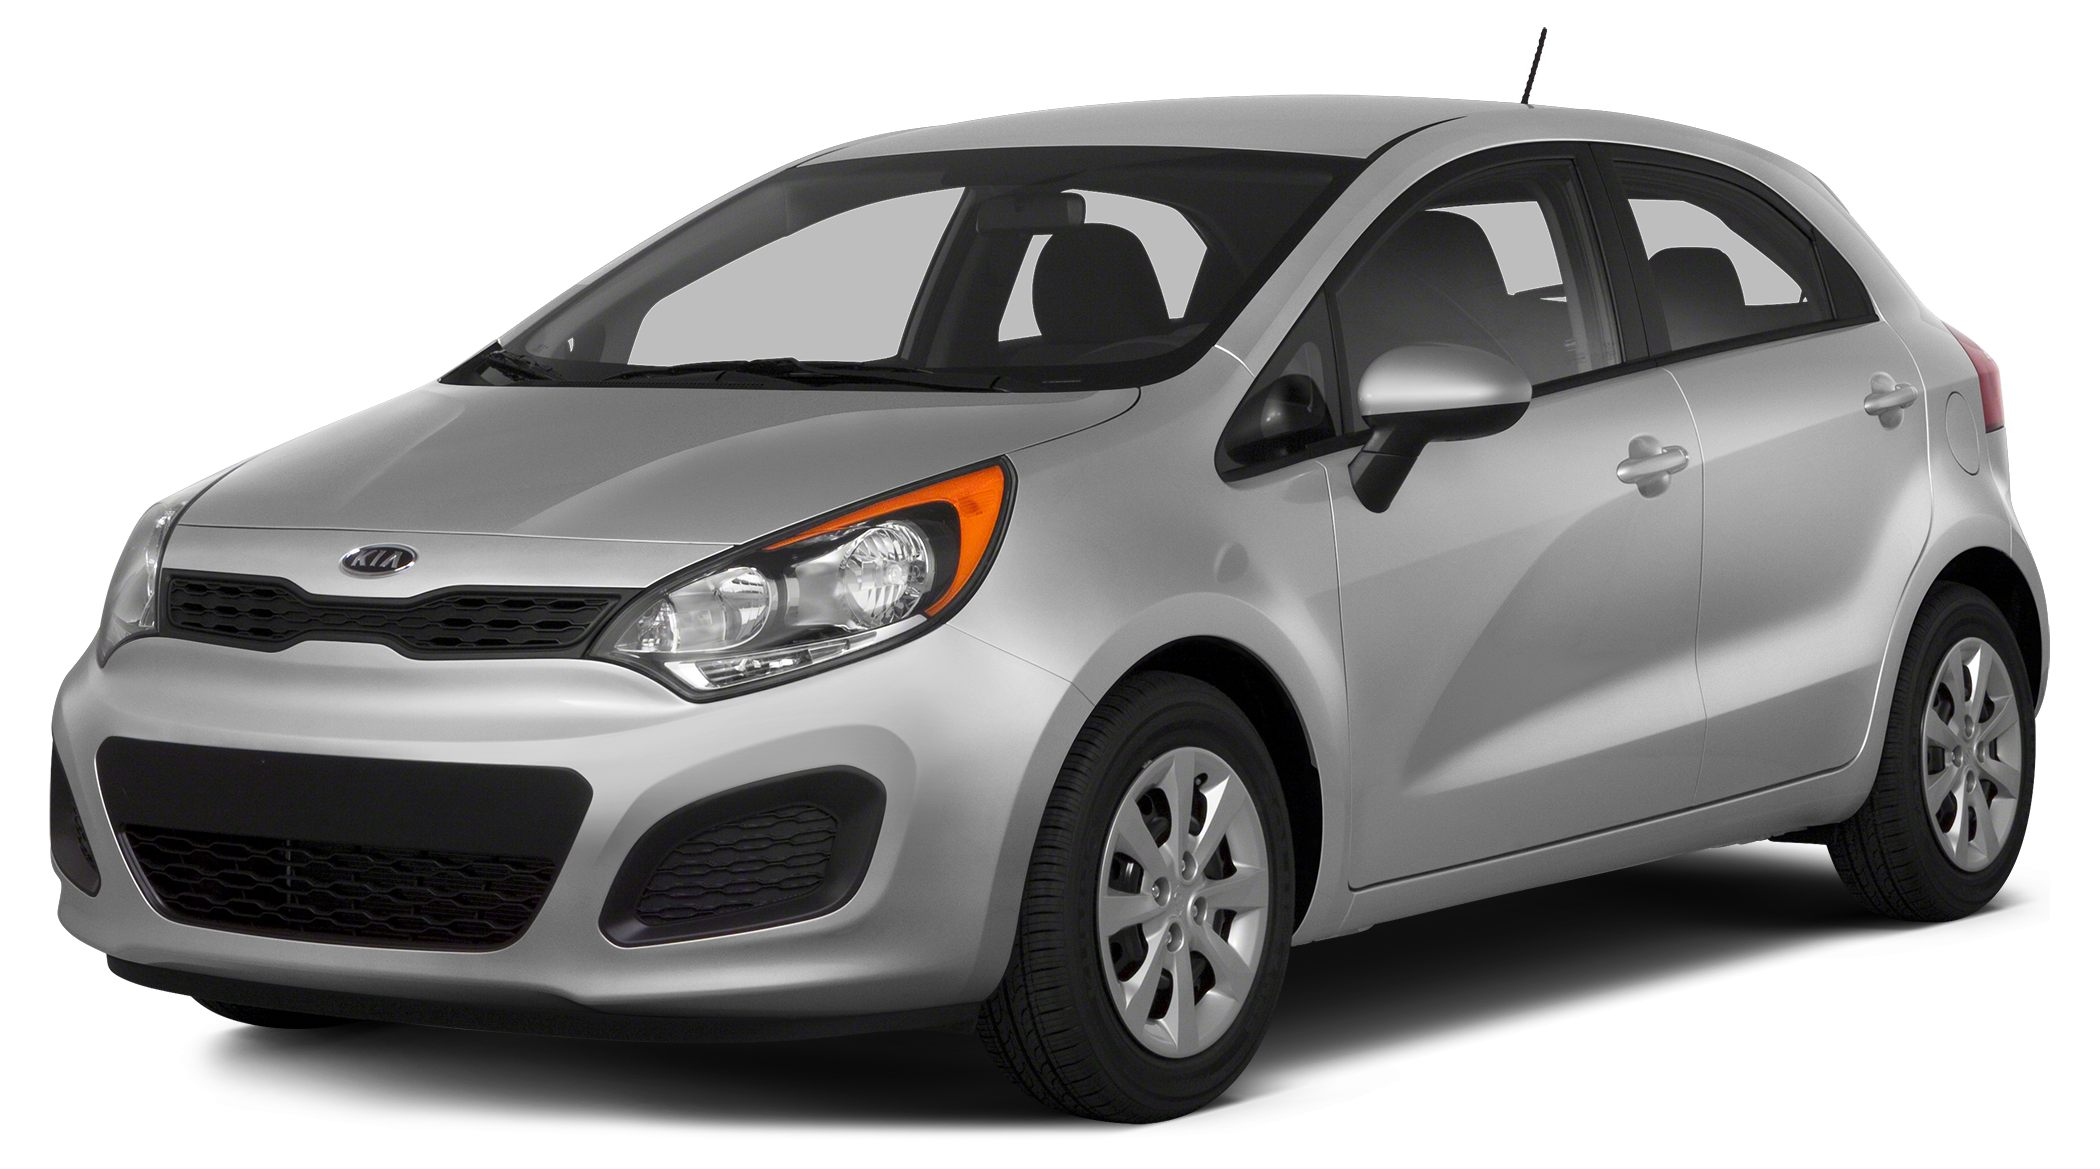 2013 Kia Rio LX This one owner Kia Rio was all serviced by us and comes with automatic transmissio